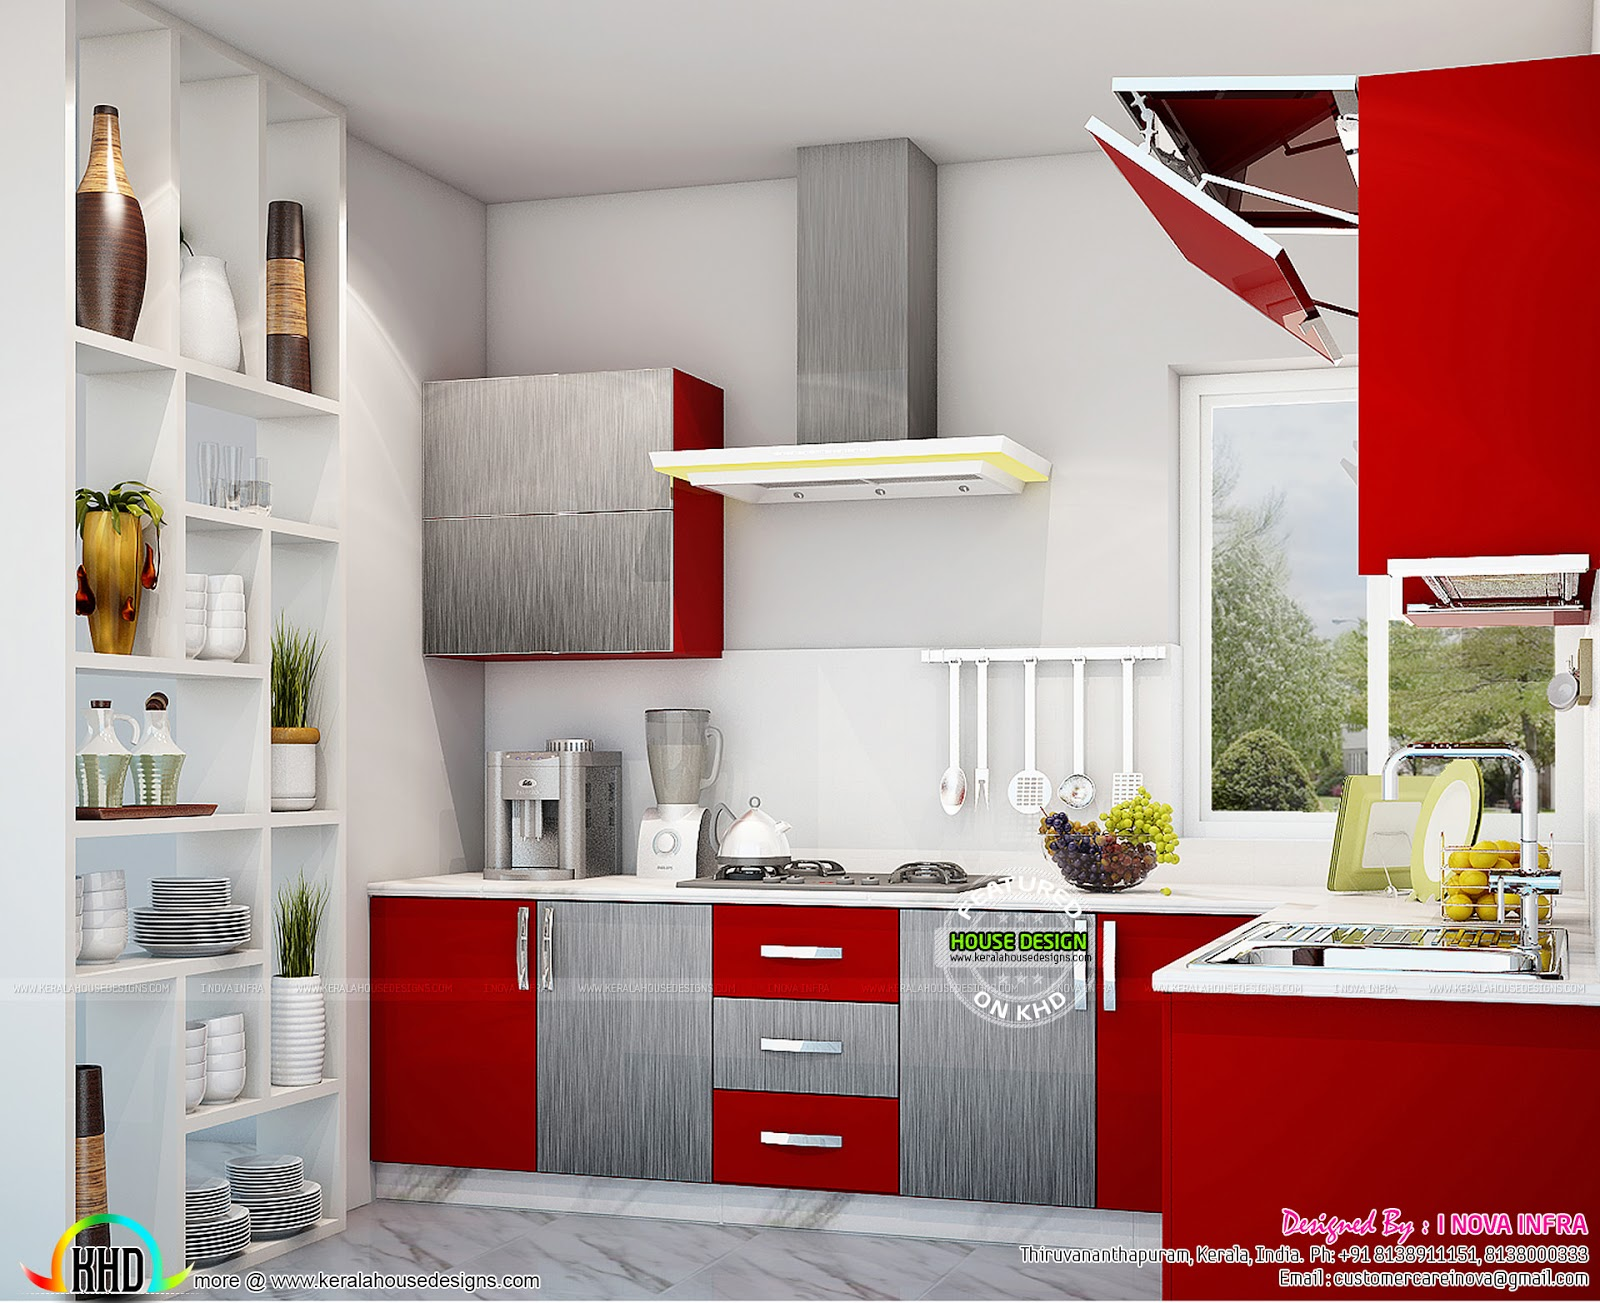 Kitchen interior works at trivandrum kerala home design and floor plans Modern houses interior kitchen